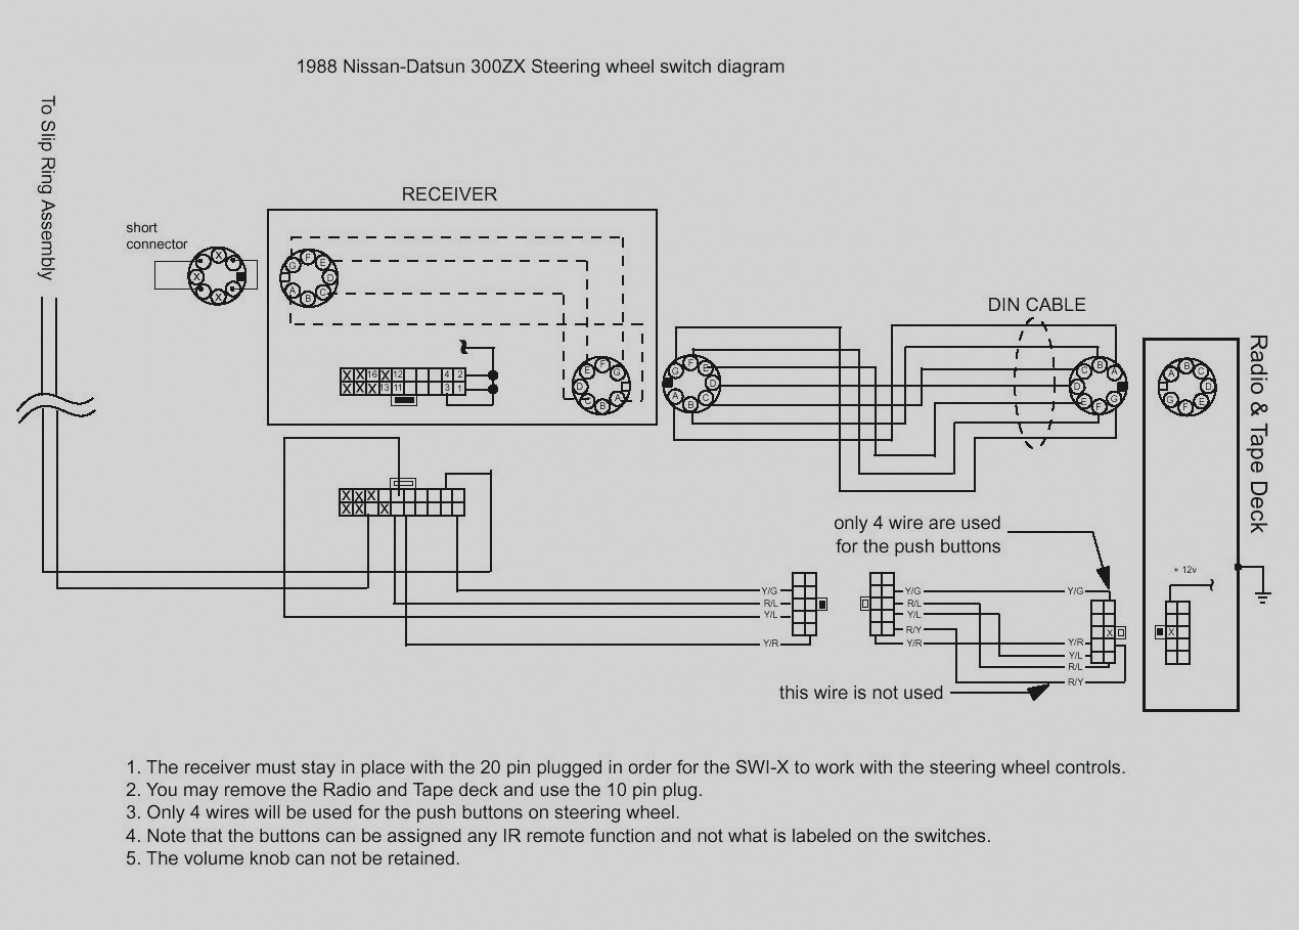 Kenwood Kdc 108 Wiring Diagram Free Picture | Wiring Diagram - Kenwood Kdc 108 Wiring Diagram